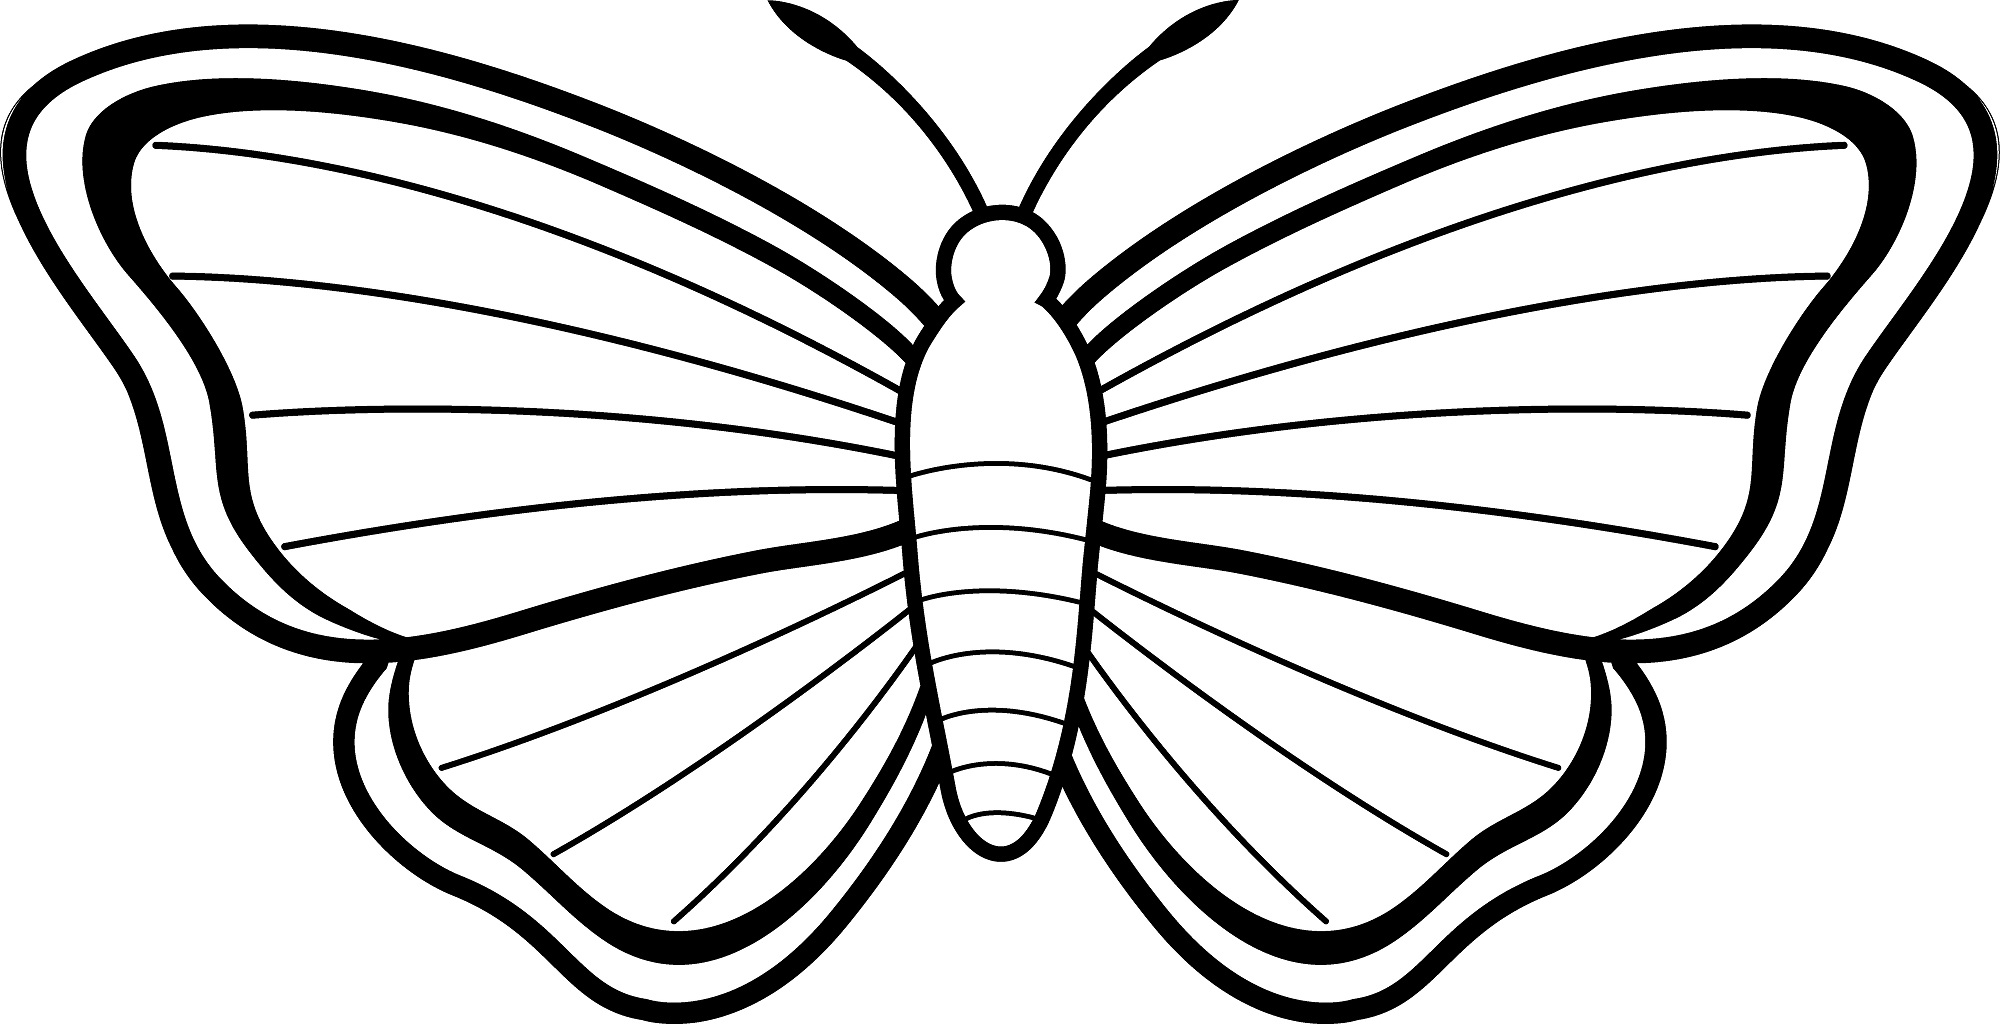 Butterfly Coloring Sheets Printables | Free Printable Butterfly ... | Coloring Pages Butterfly Printable  | title